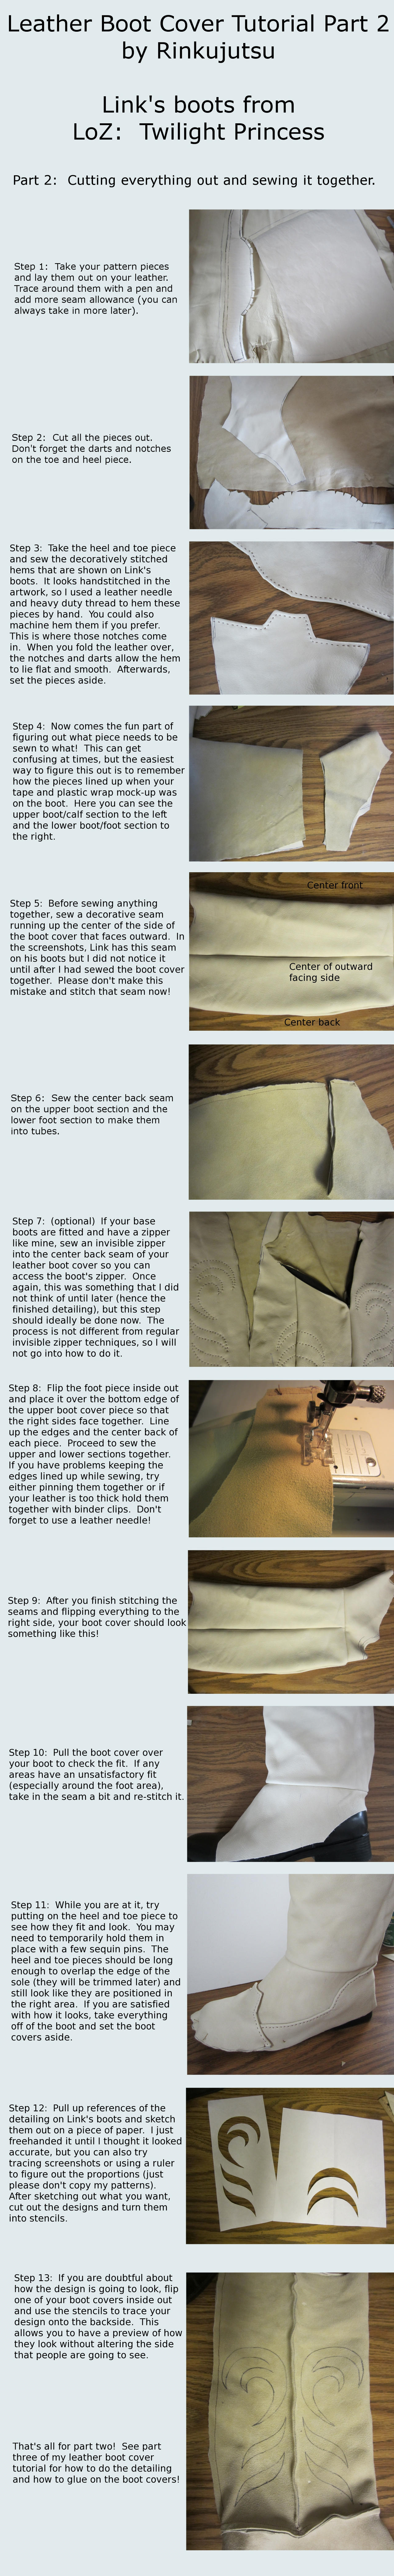 Leather Boot Cover Tutorial Part 2 Tp Link Boots By